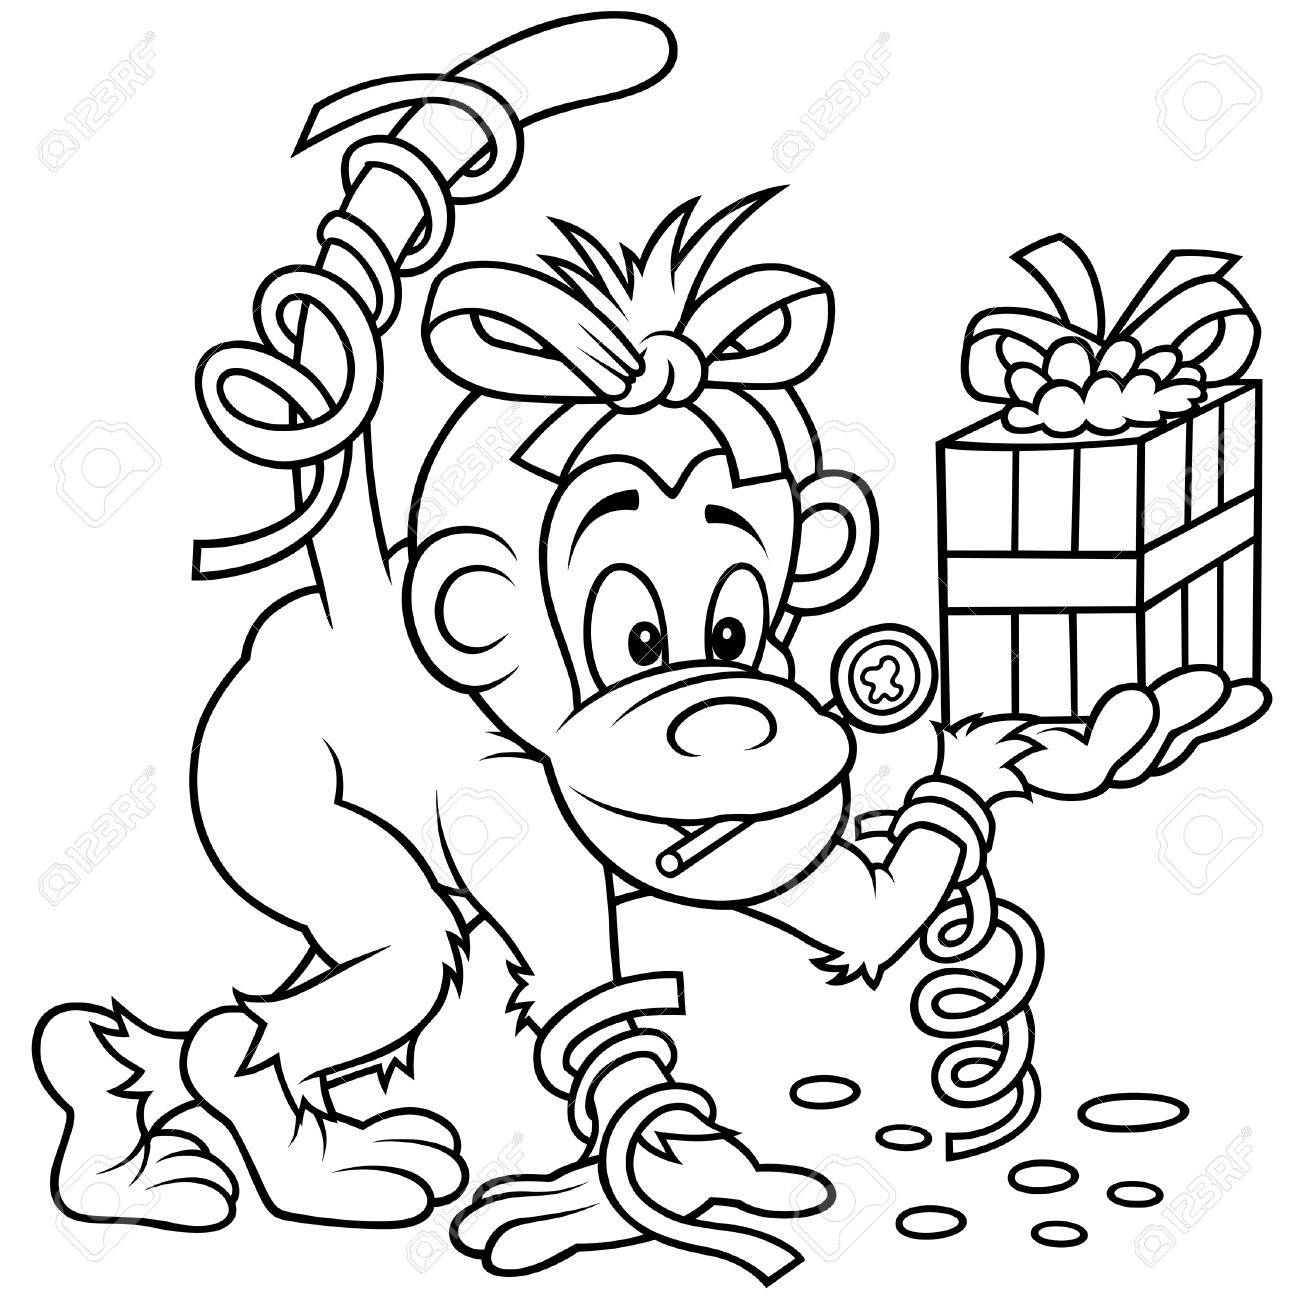 Monkey and Gift - Black and White Cartoon illustration, Vector Stock Vector - 8669812